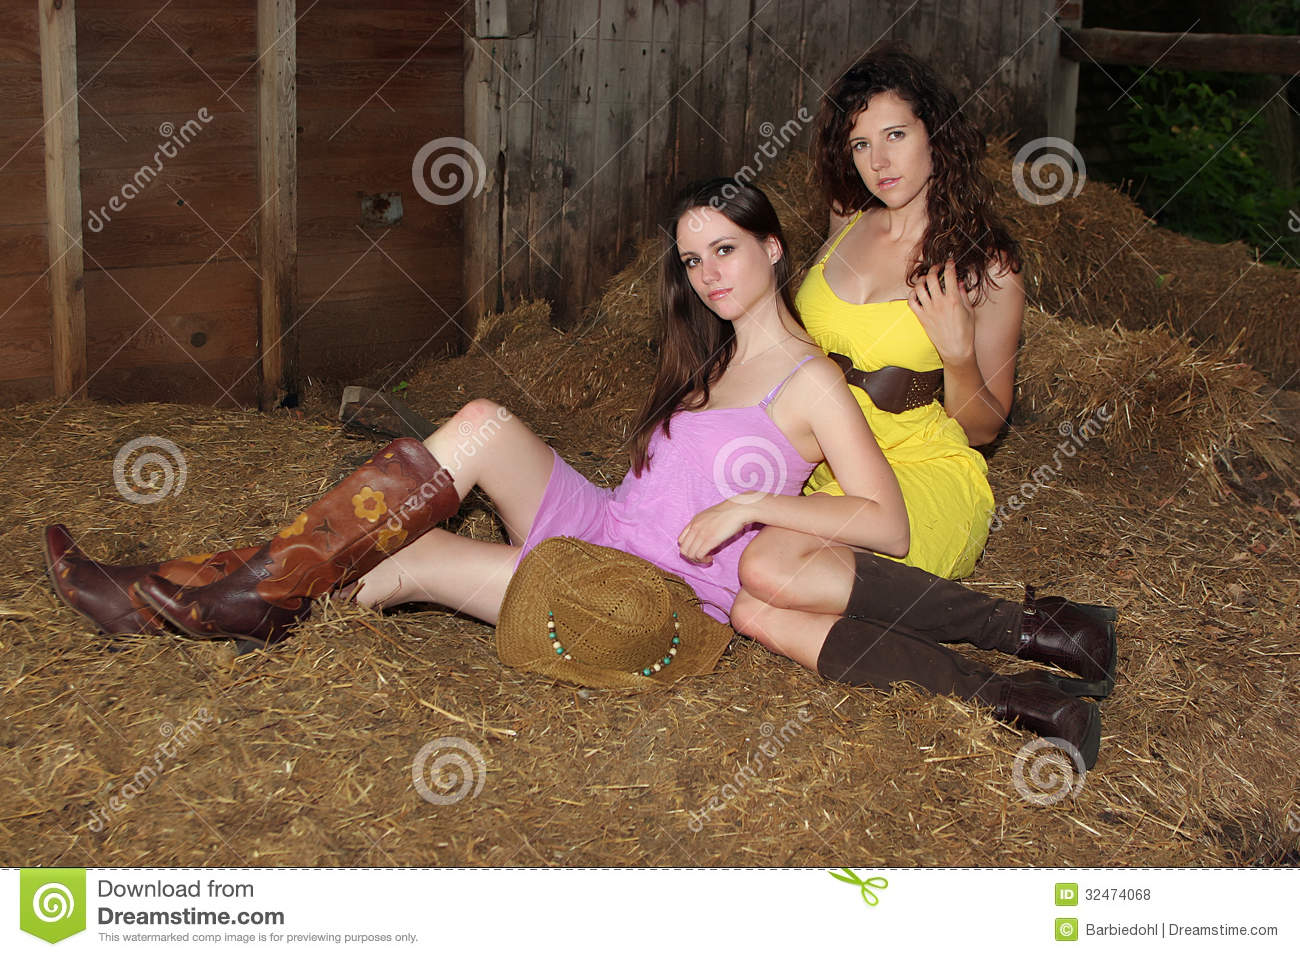 Boot barn girl models, indian hardcore vids